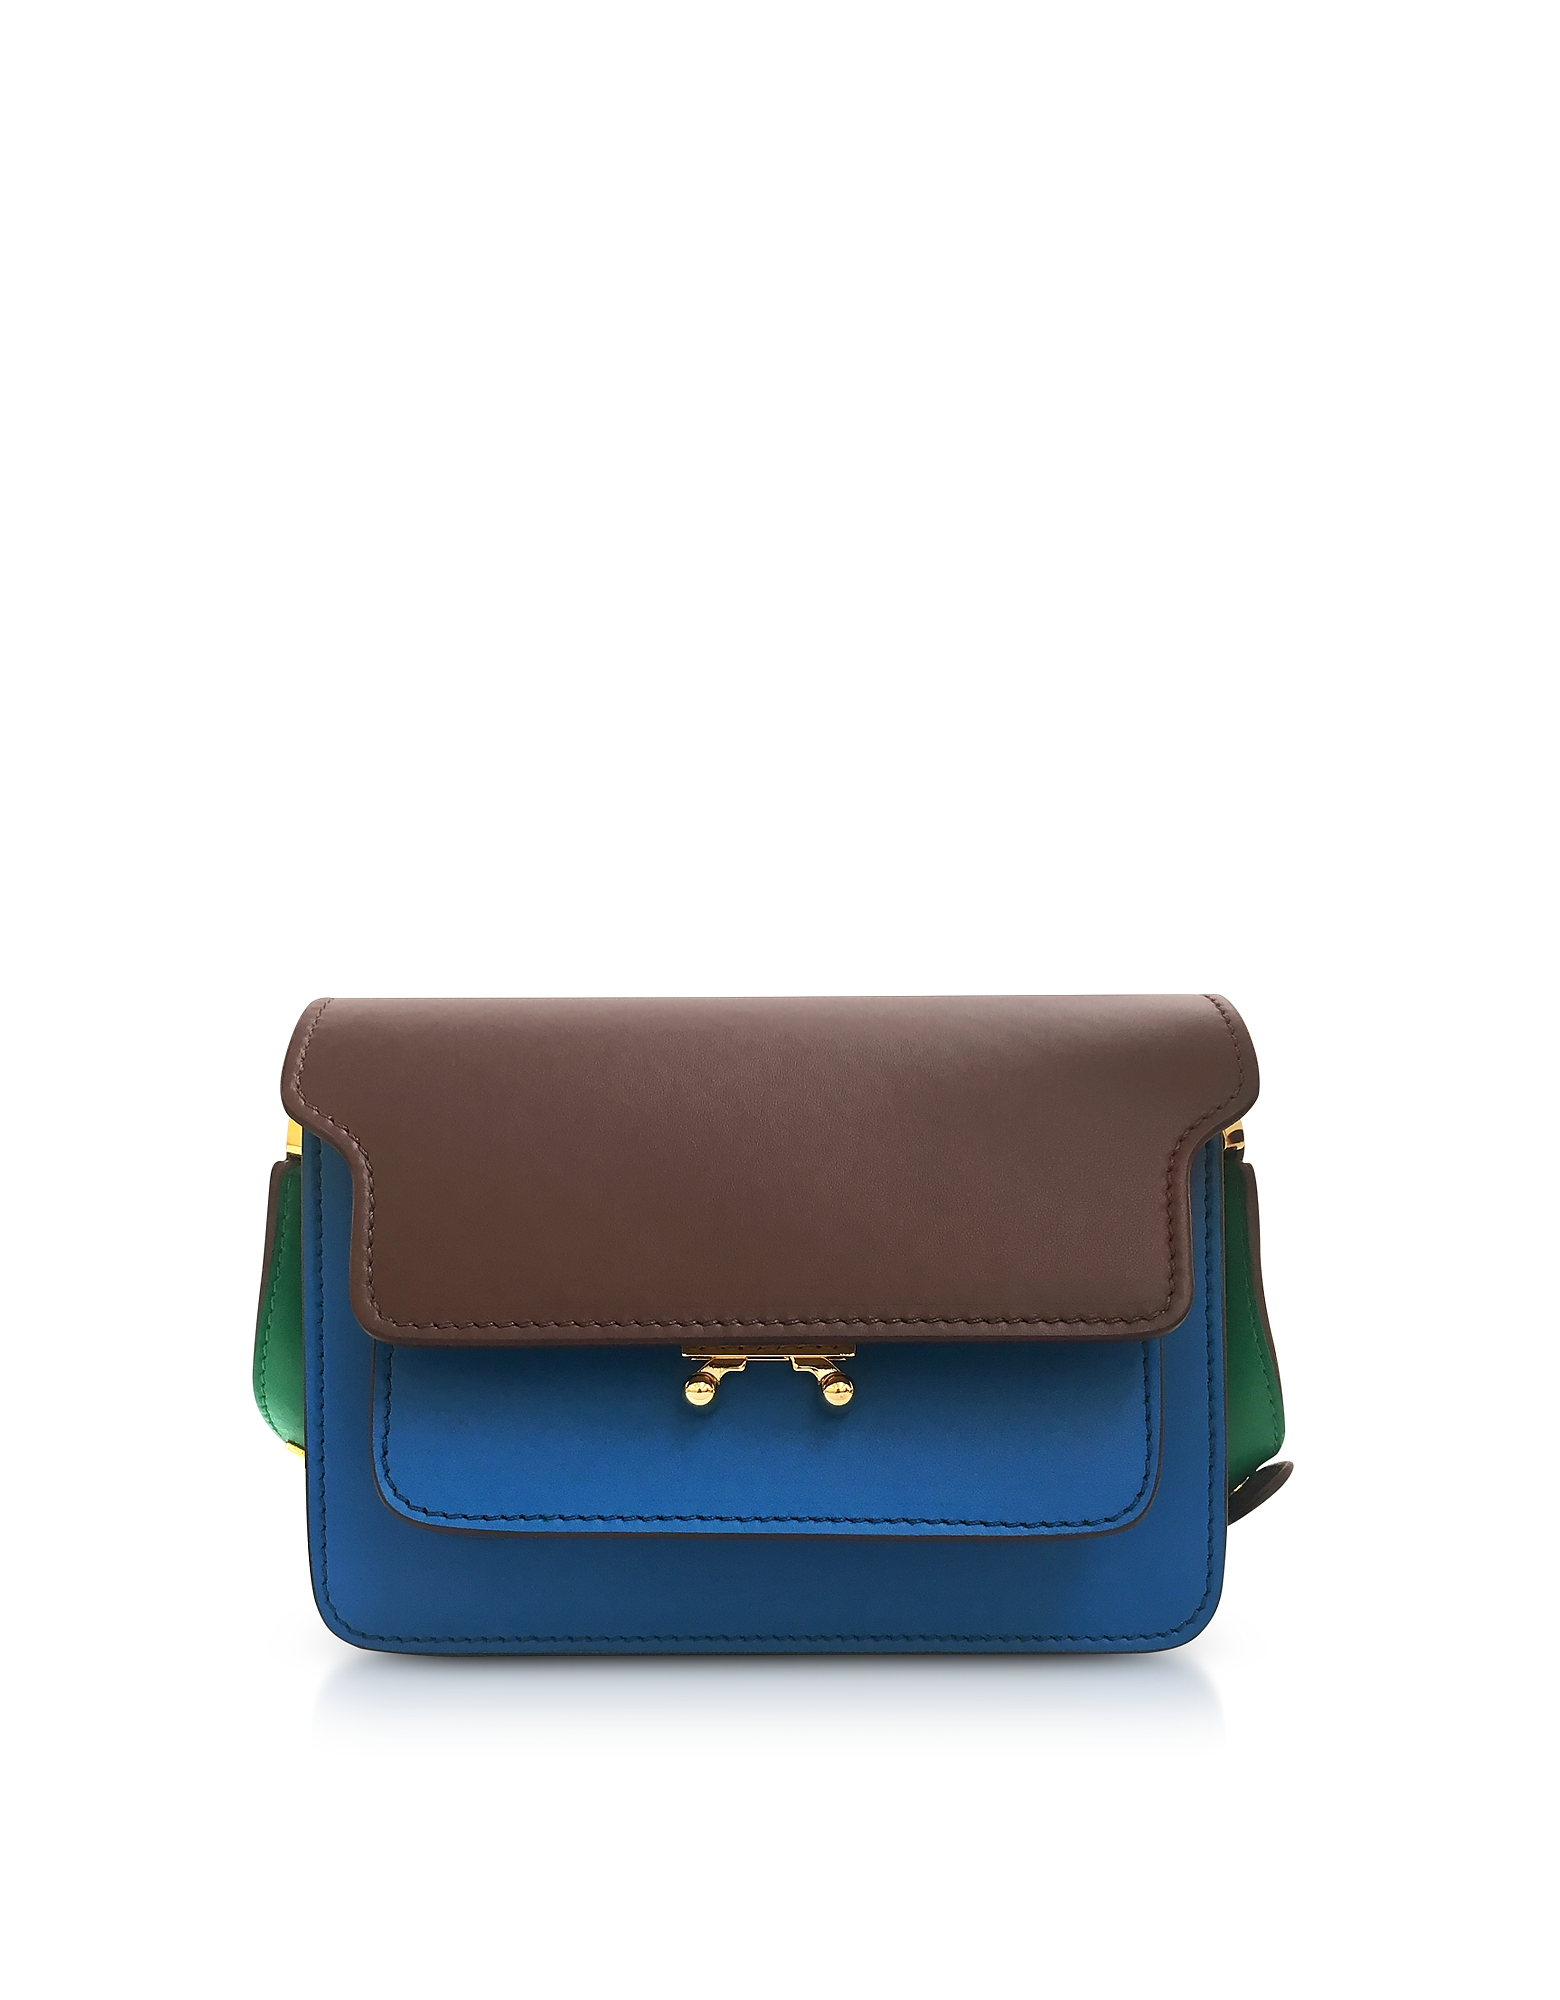 Color Block Leather Mini Trunk Bag. Mini Trunk Bag crafted in a trio of calf leather, takes the iconic Trunk bag and makes it a marvelous mini with a